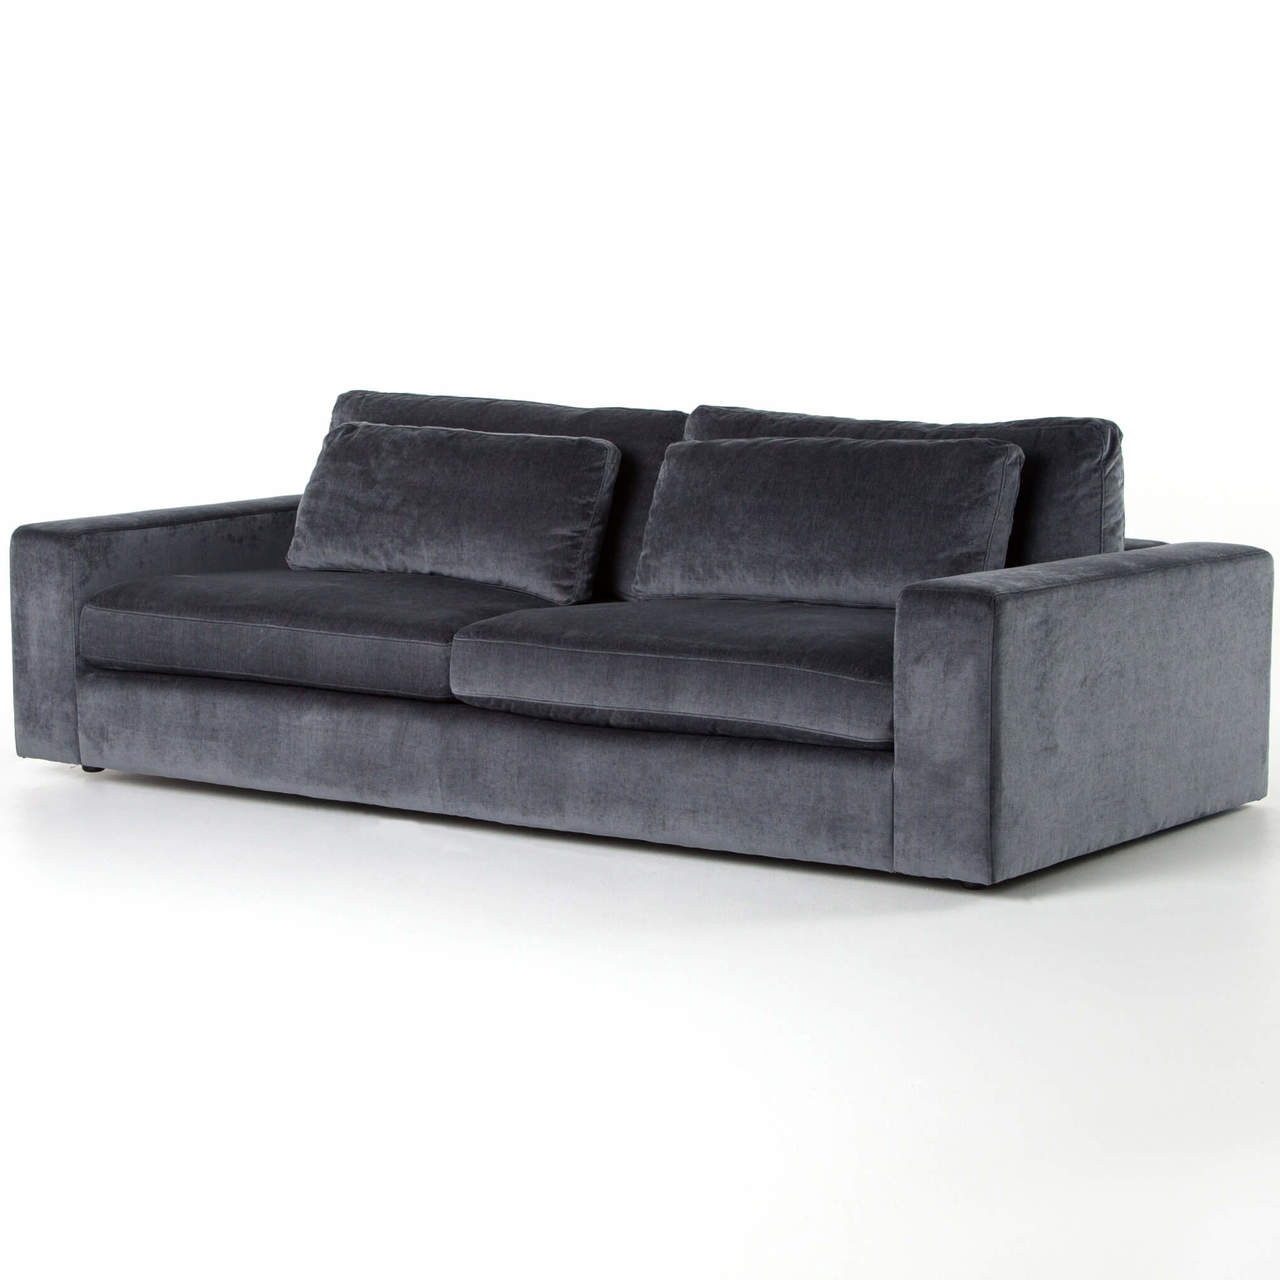 Charcoal Velvet Sofa: Bloor Contemporary Charcoal Grey Velvet Upholstered Sofa 98""